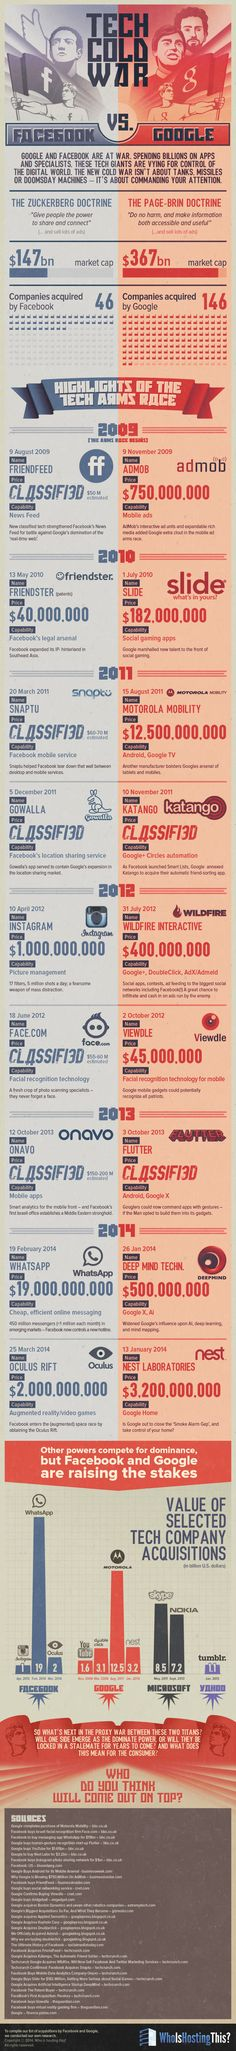 Tech Cold War: Facebook vs. Google:  Giant tech mavericks Facebook and Google are at war. They are ferociously vying for YOUR attention! Their weapons of ensnarement are apps, social media platforms, gadgets, and ads. While they both spend billions on innovations and top-notch talent, their strategies for rising to the top are different. This infographic delves into the timeline of Facebook and Google's battle for digital domination.